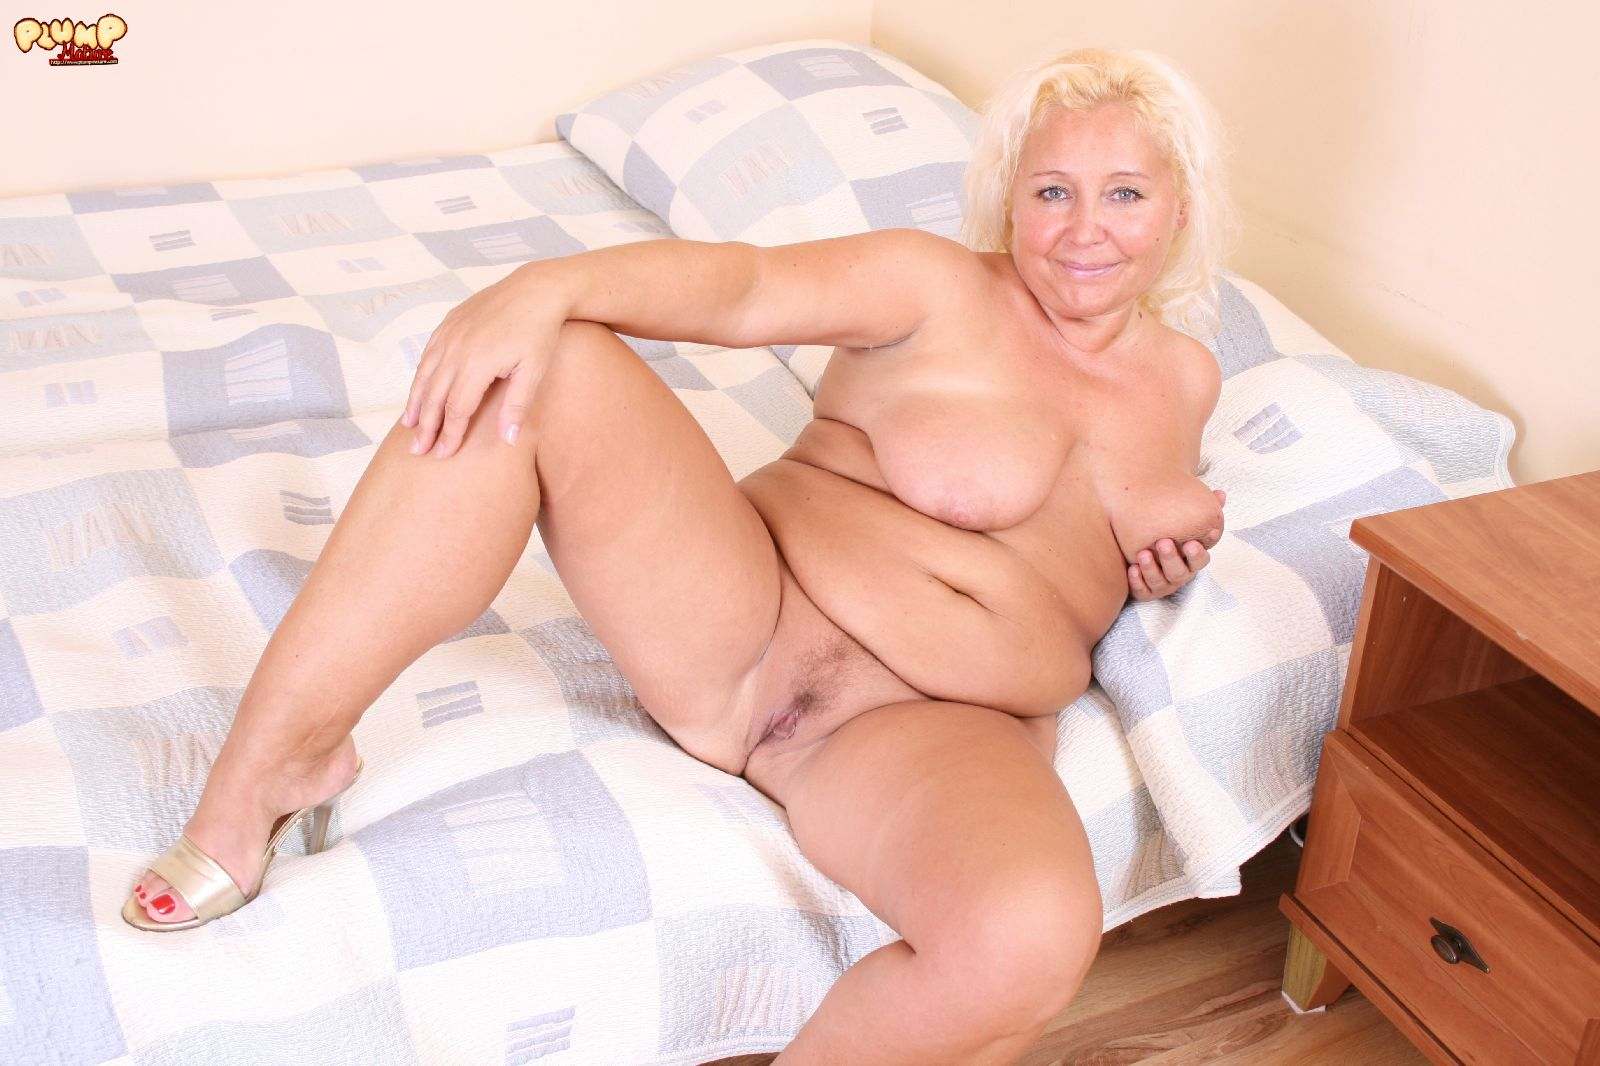 Bar chubby old blond August